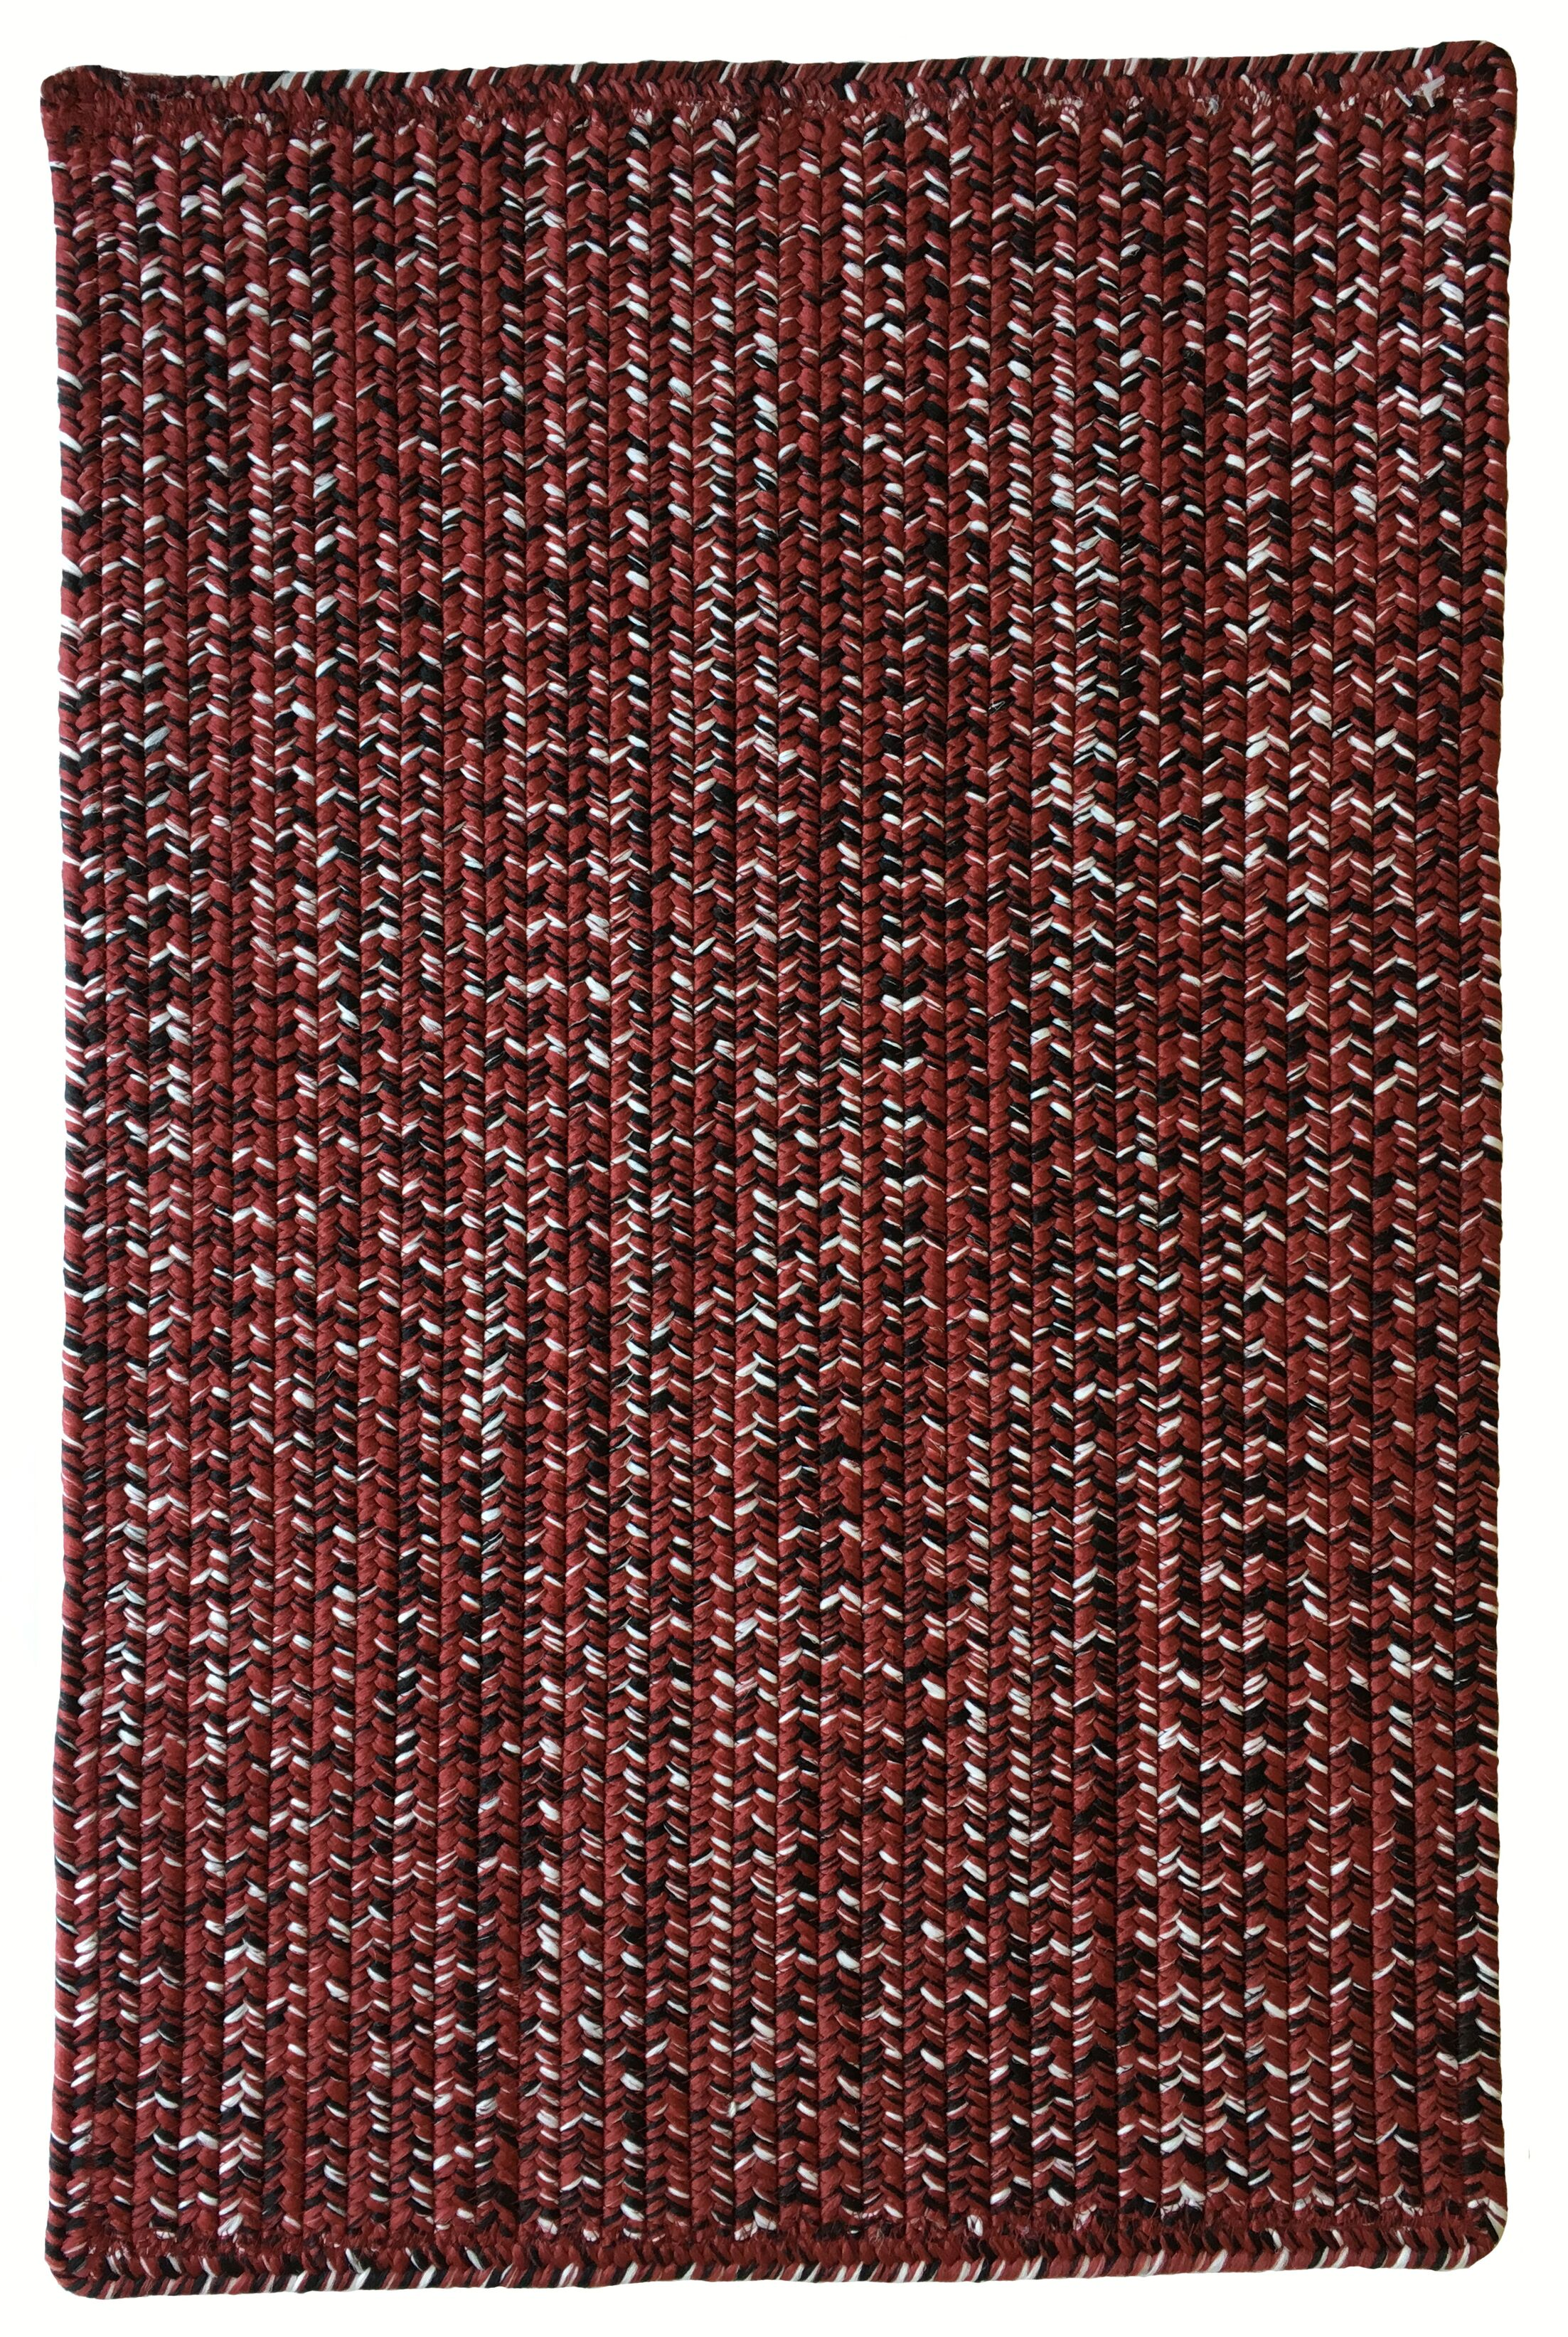 One-of-a-Kind Aukerman Hand-Braided Burgundy Indoor/Outdoor Area Rug Rug Size: Runner 2'3